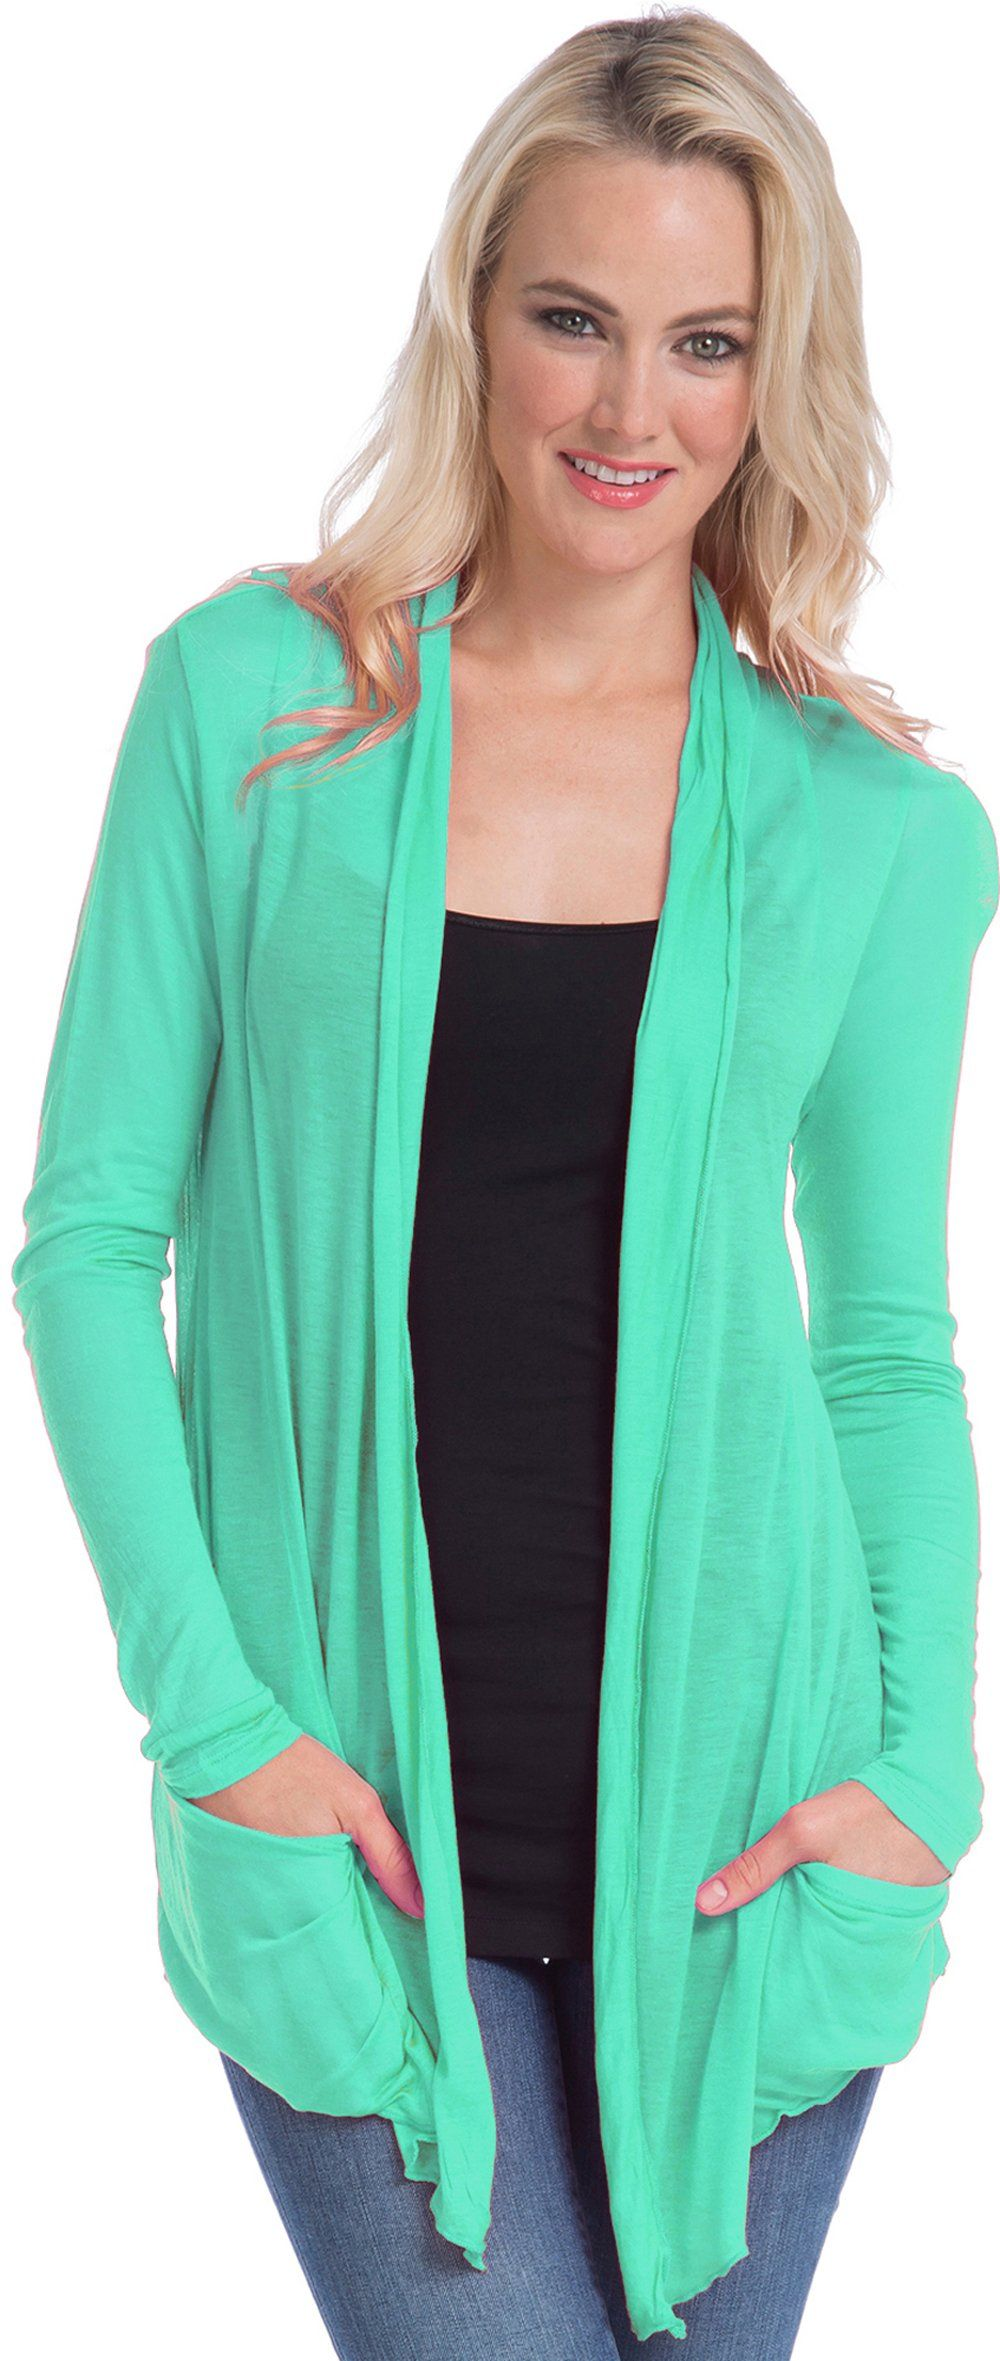 Semi-sheer Cardigan Cover-up with Pockets, 3X, Sea-Green | My ...